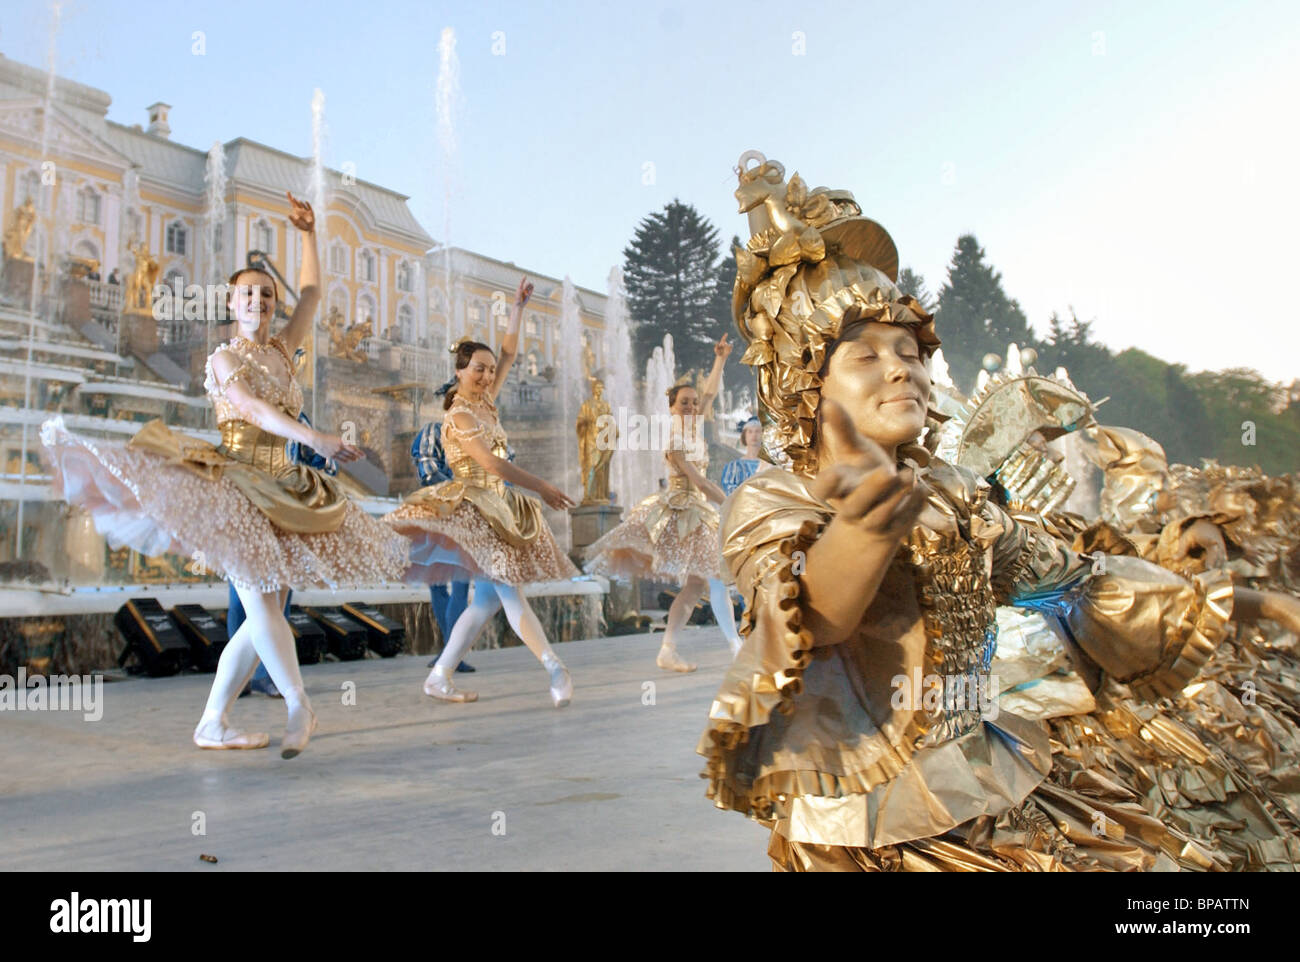 Enchanting Spectacle of Peterhof Fountains - Stock Image